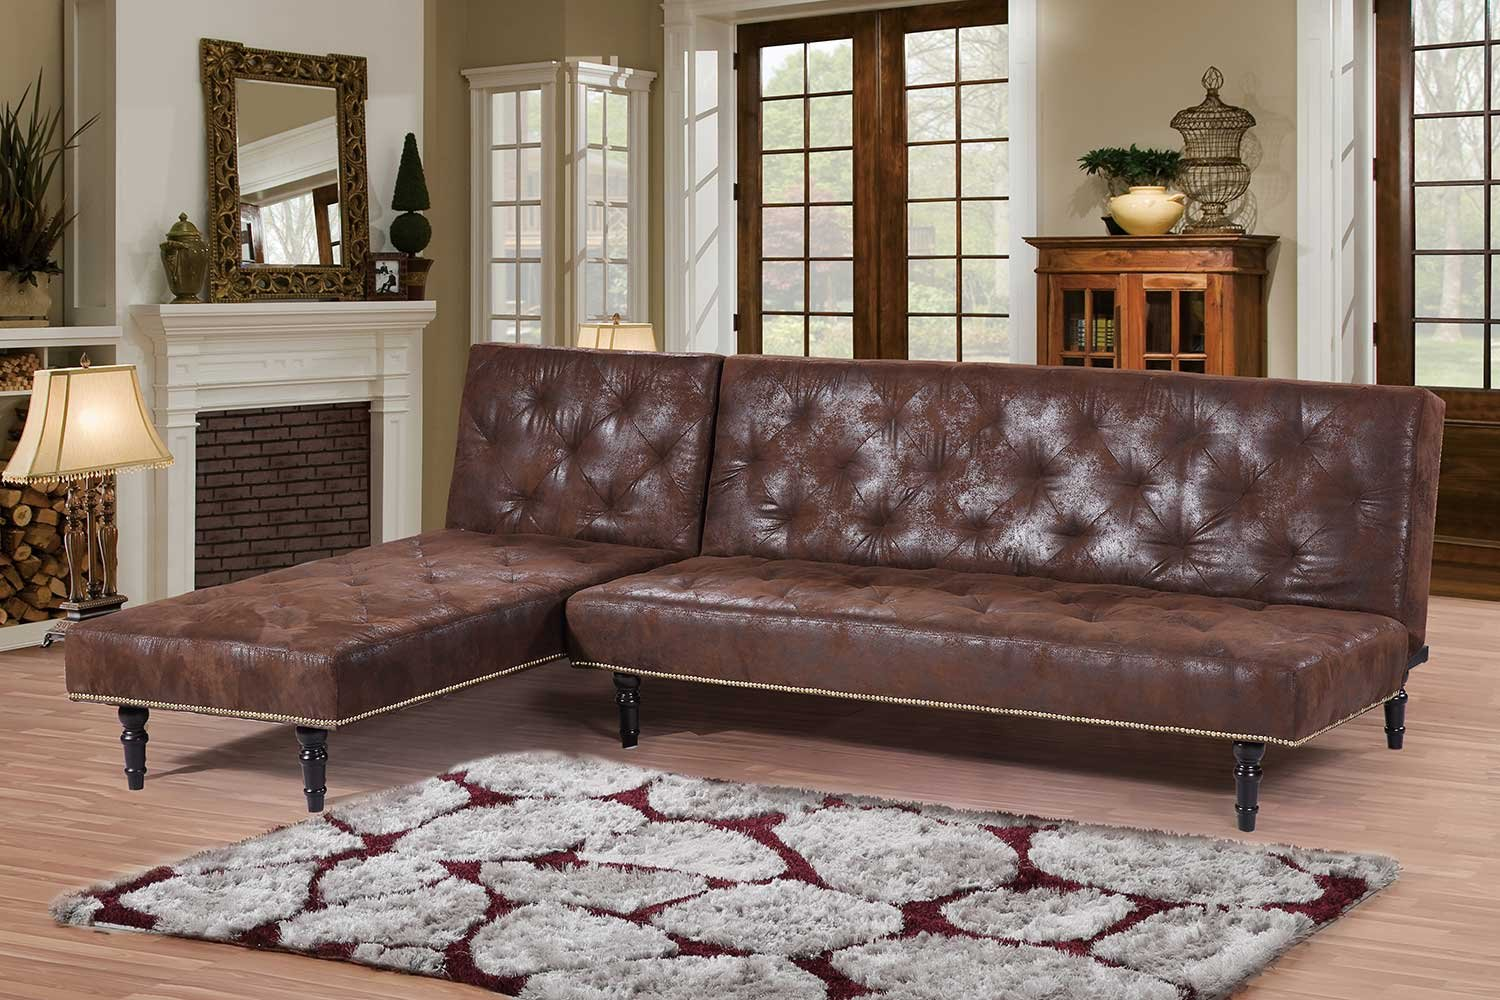 Nice New Victorian Antique Style Brown Faux Leather Suede L Shaped Corner 4  Seater Charles Sofa Bed With Universal Chaise Longue: Amazon.co.uk: Kitchen  U0026 Home